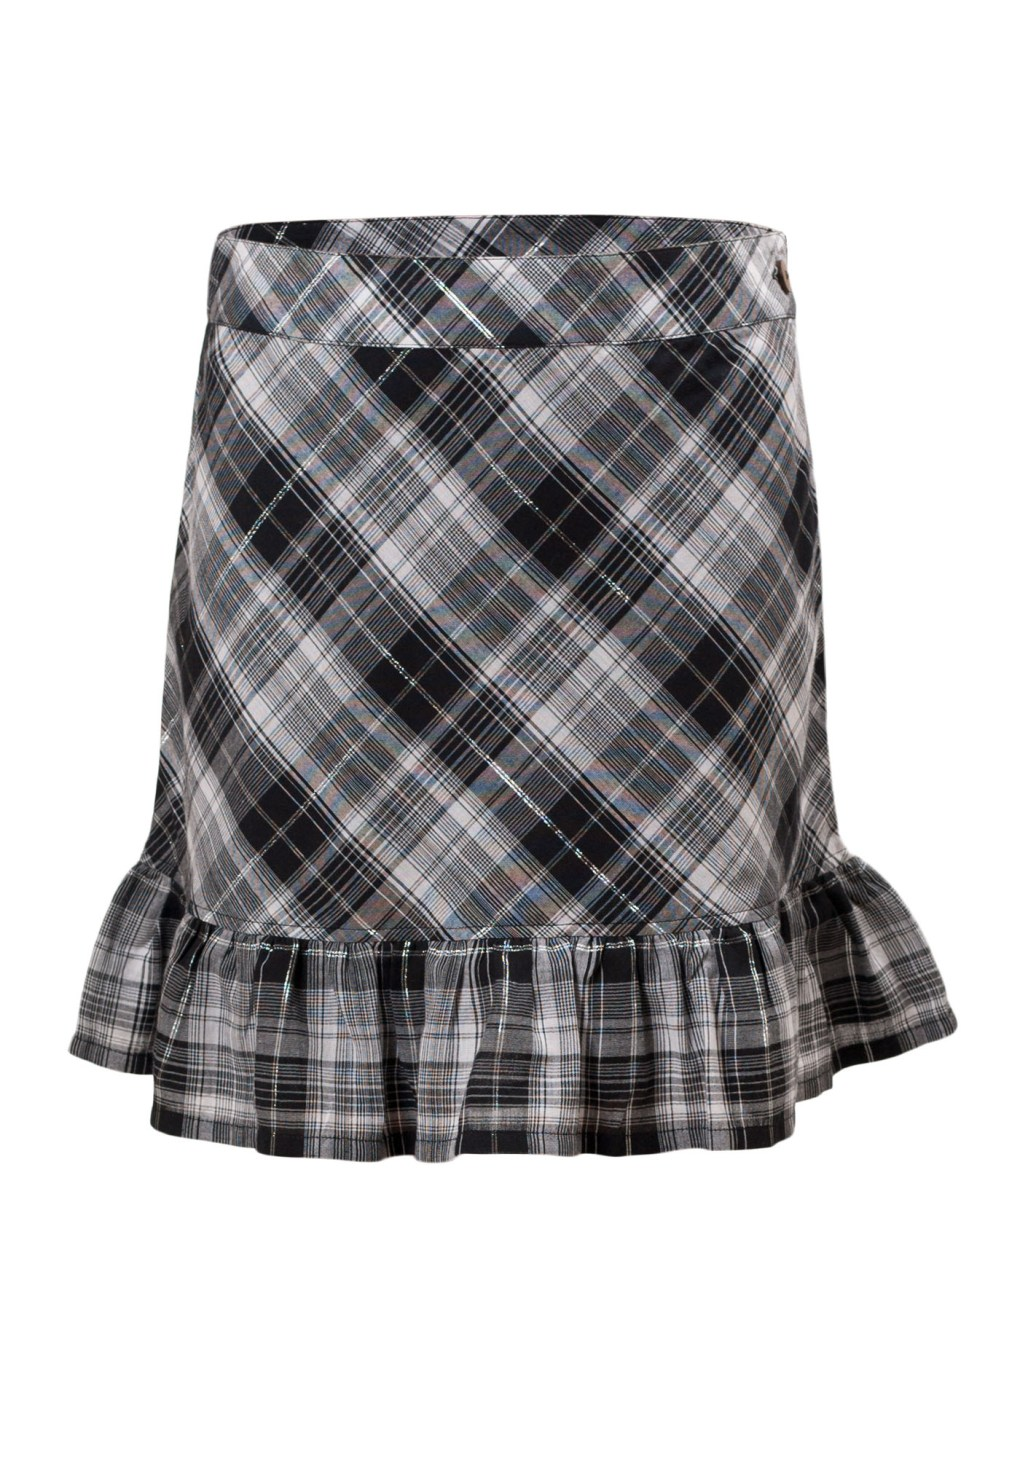 MINC Petite Elegant Girls Ruffle Skirt in Black and White Checks Cotton